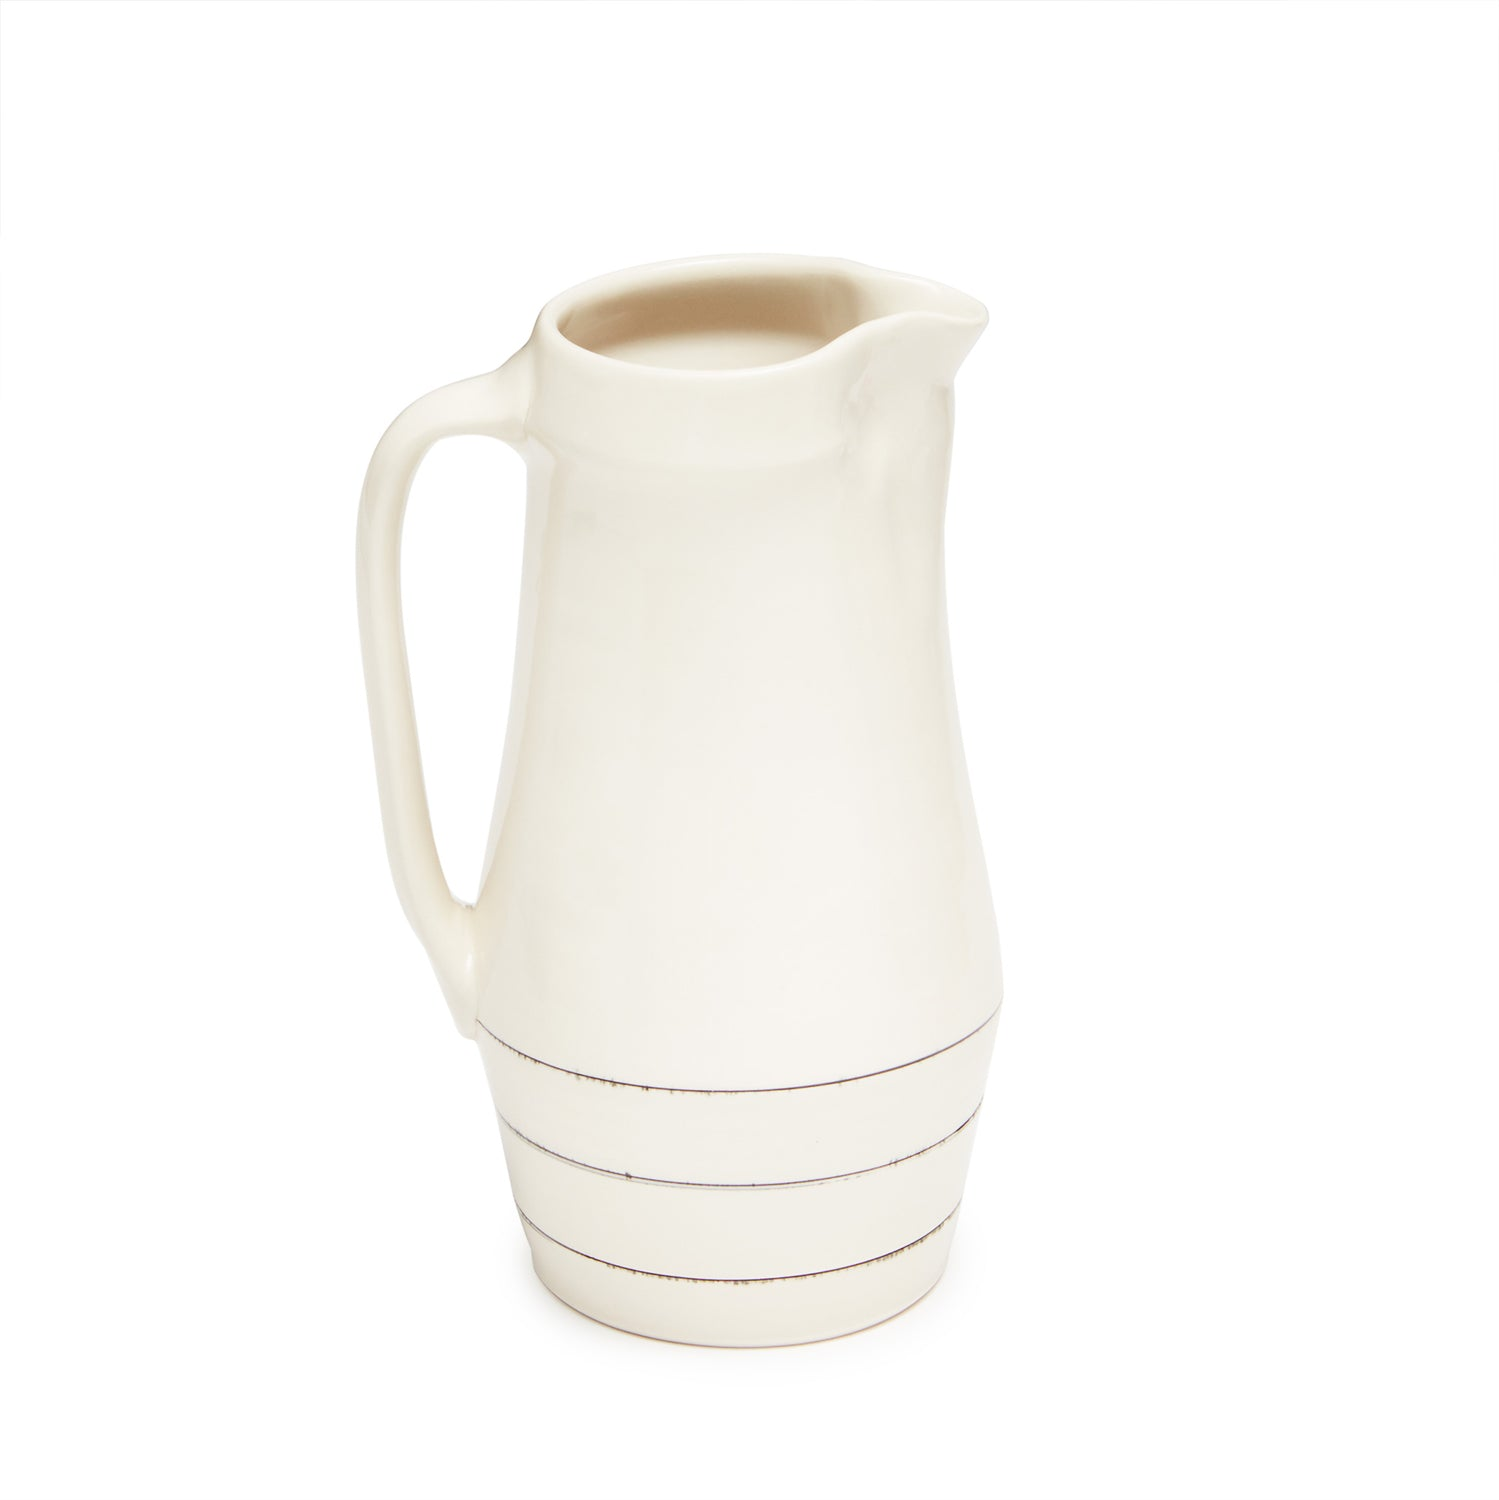 Ltd. Edition Pitcher - Banded